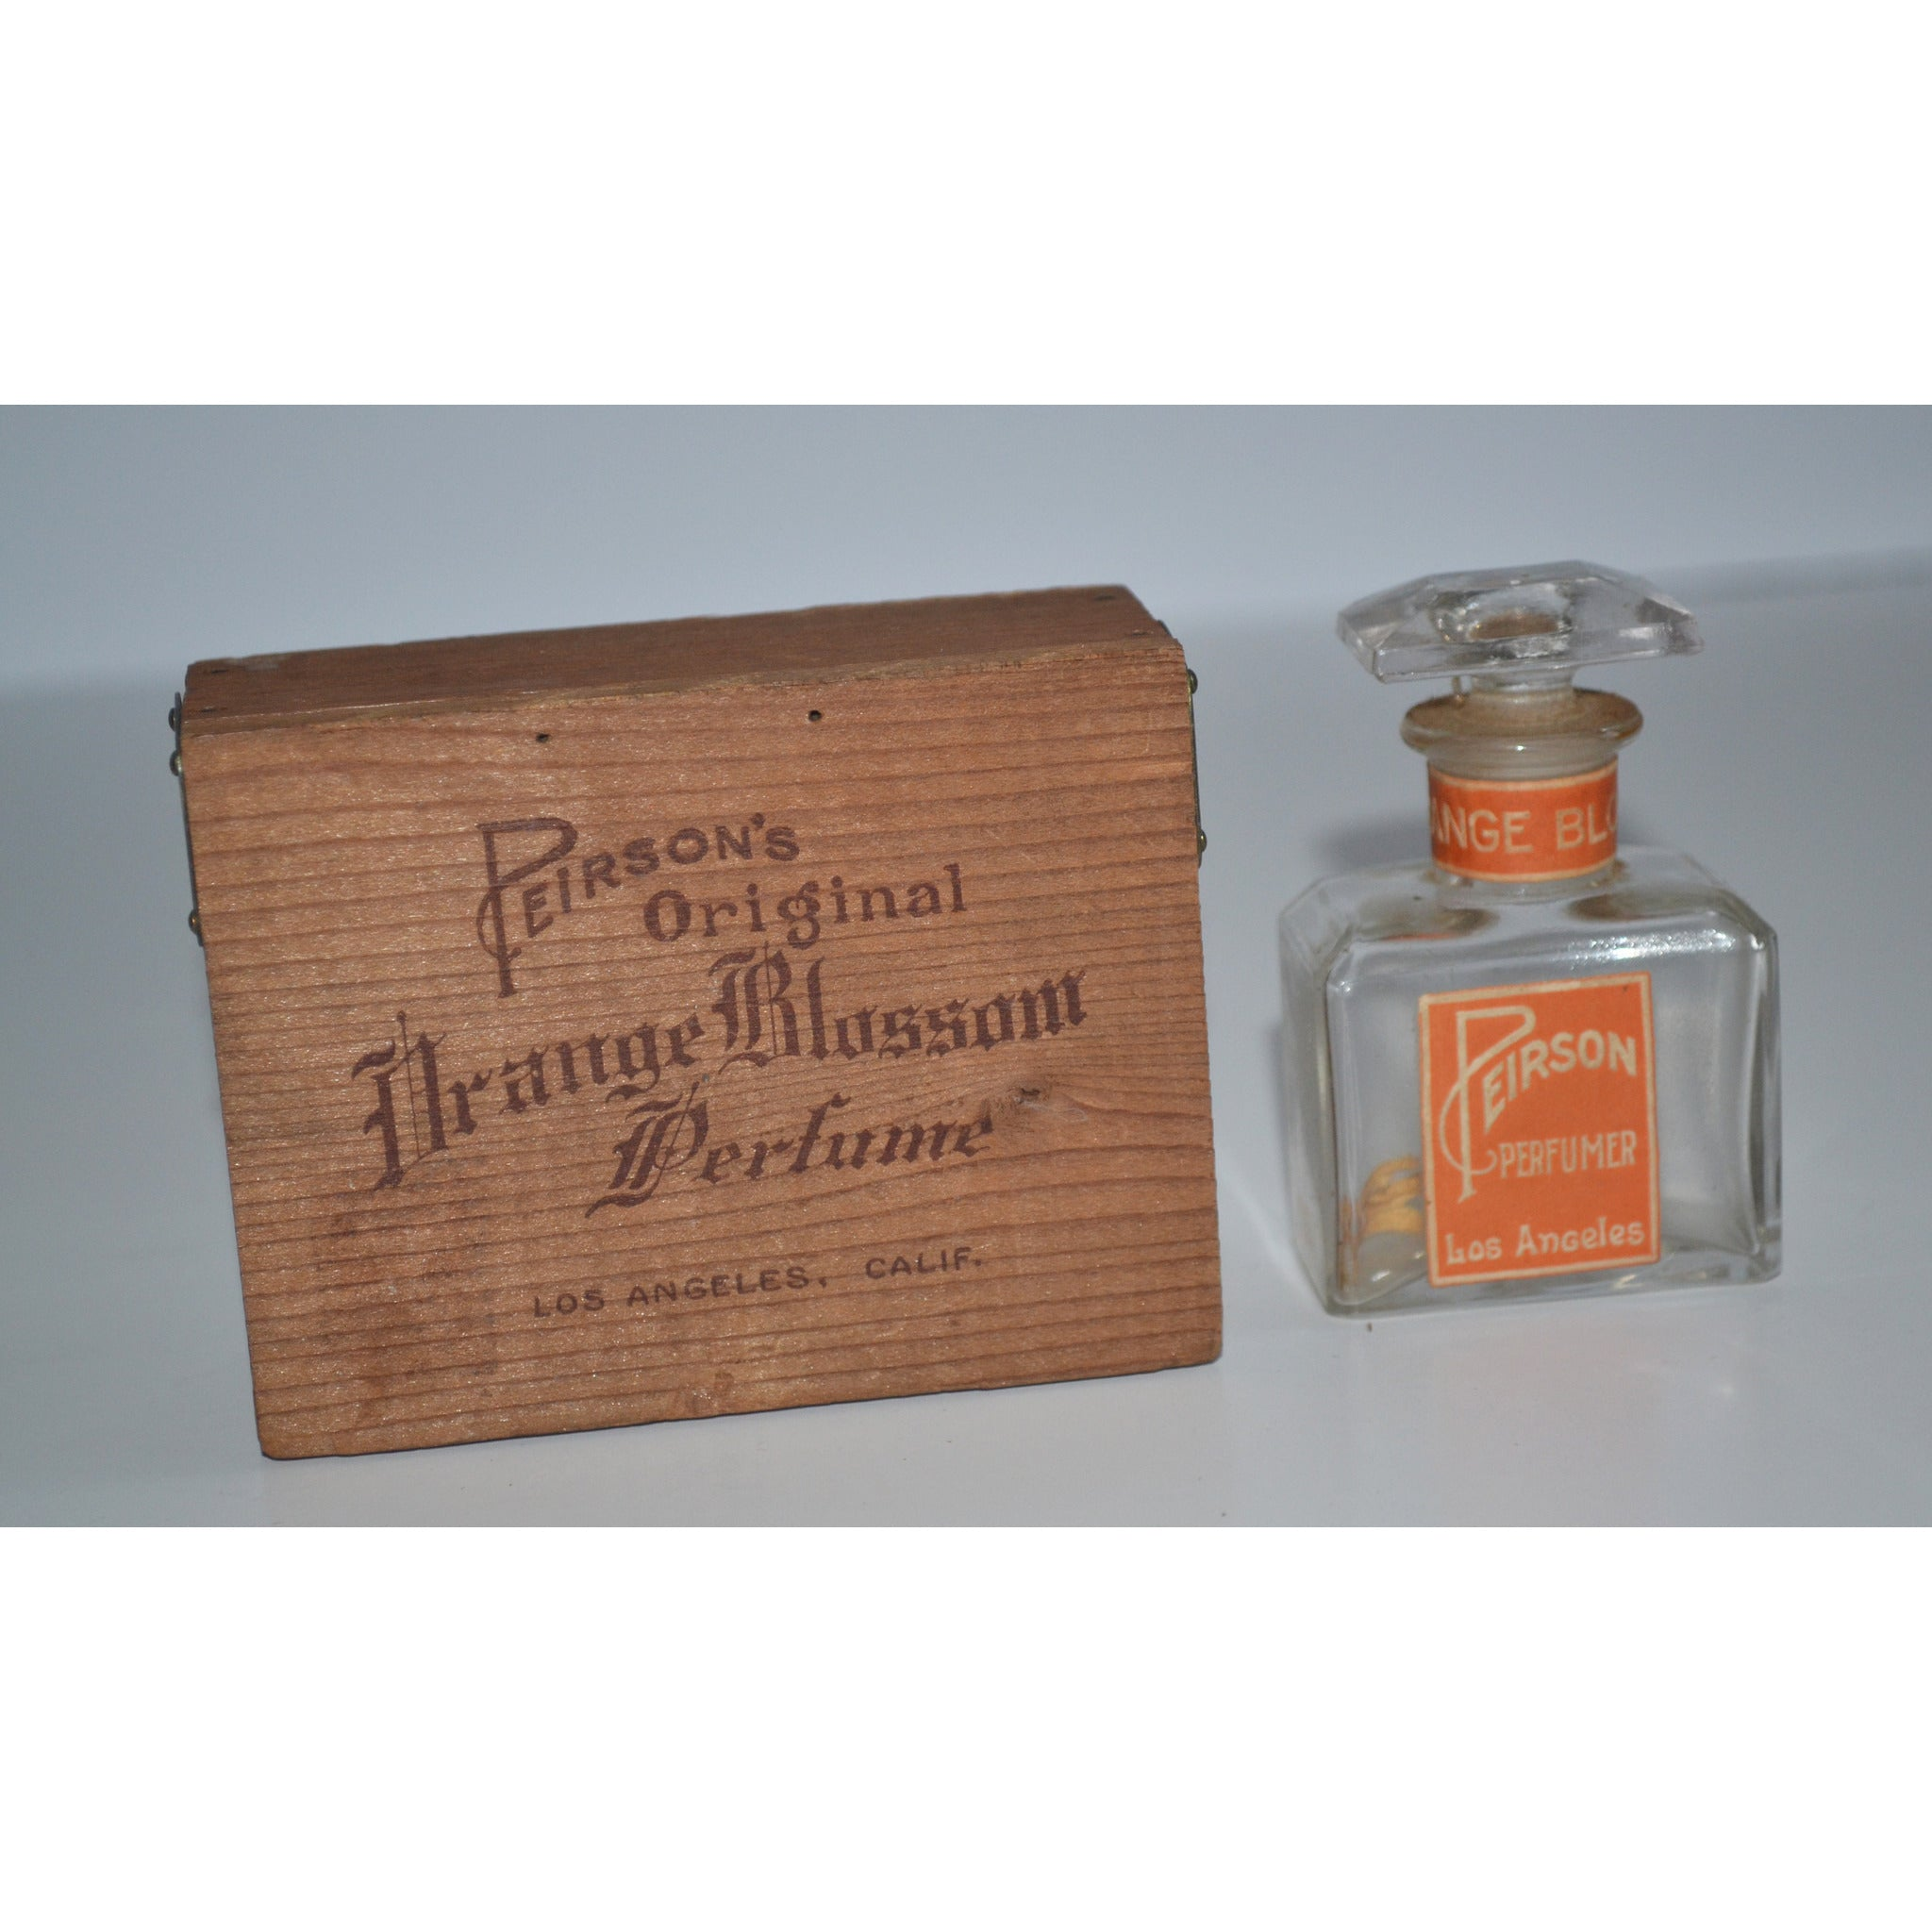 Vintage Orange Blossom Perfume By Peirson's